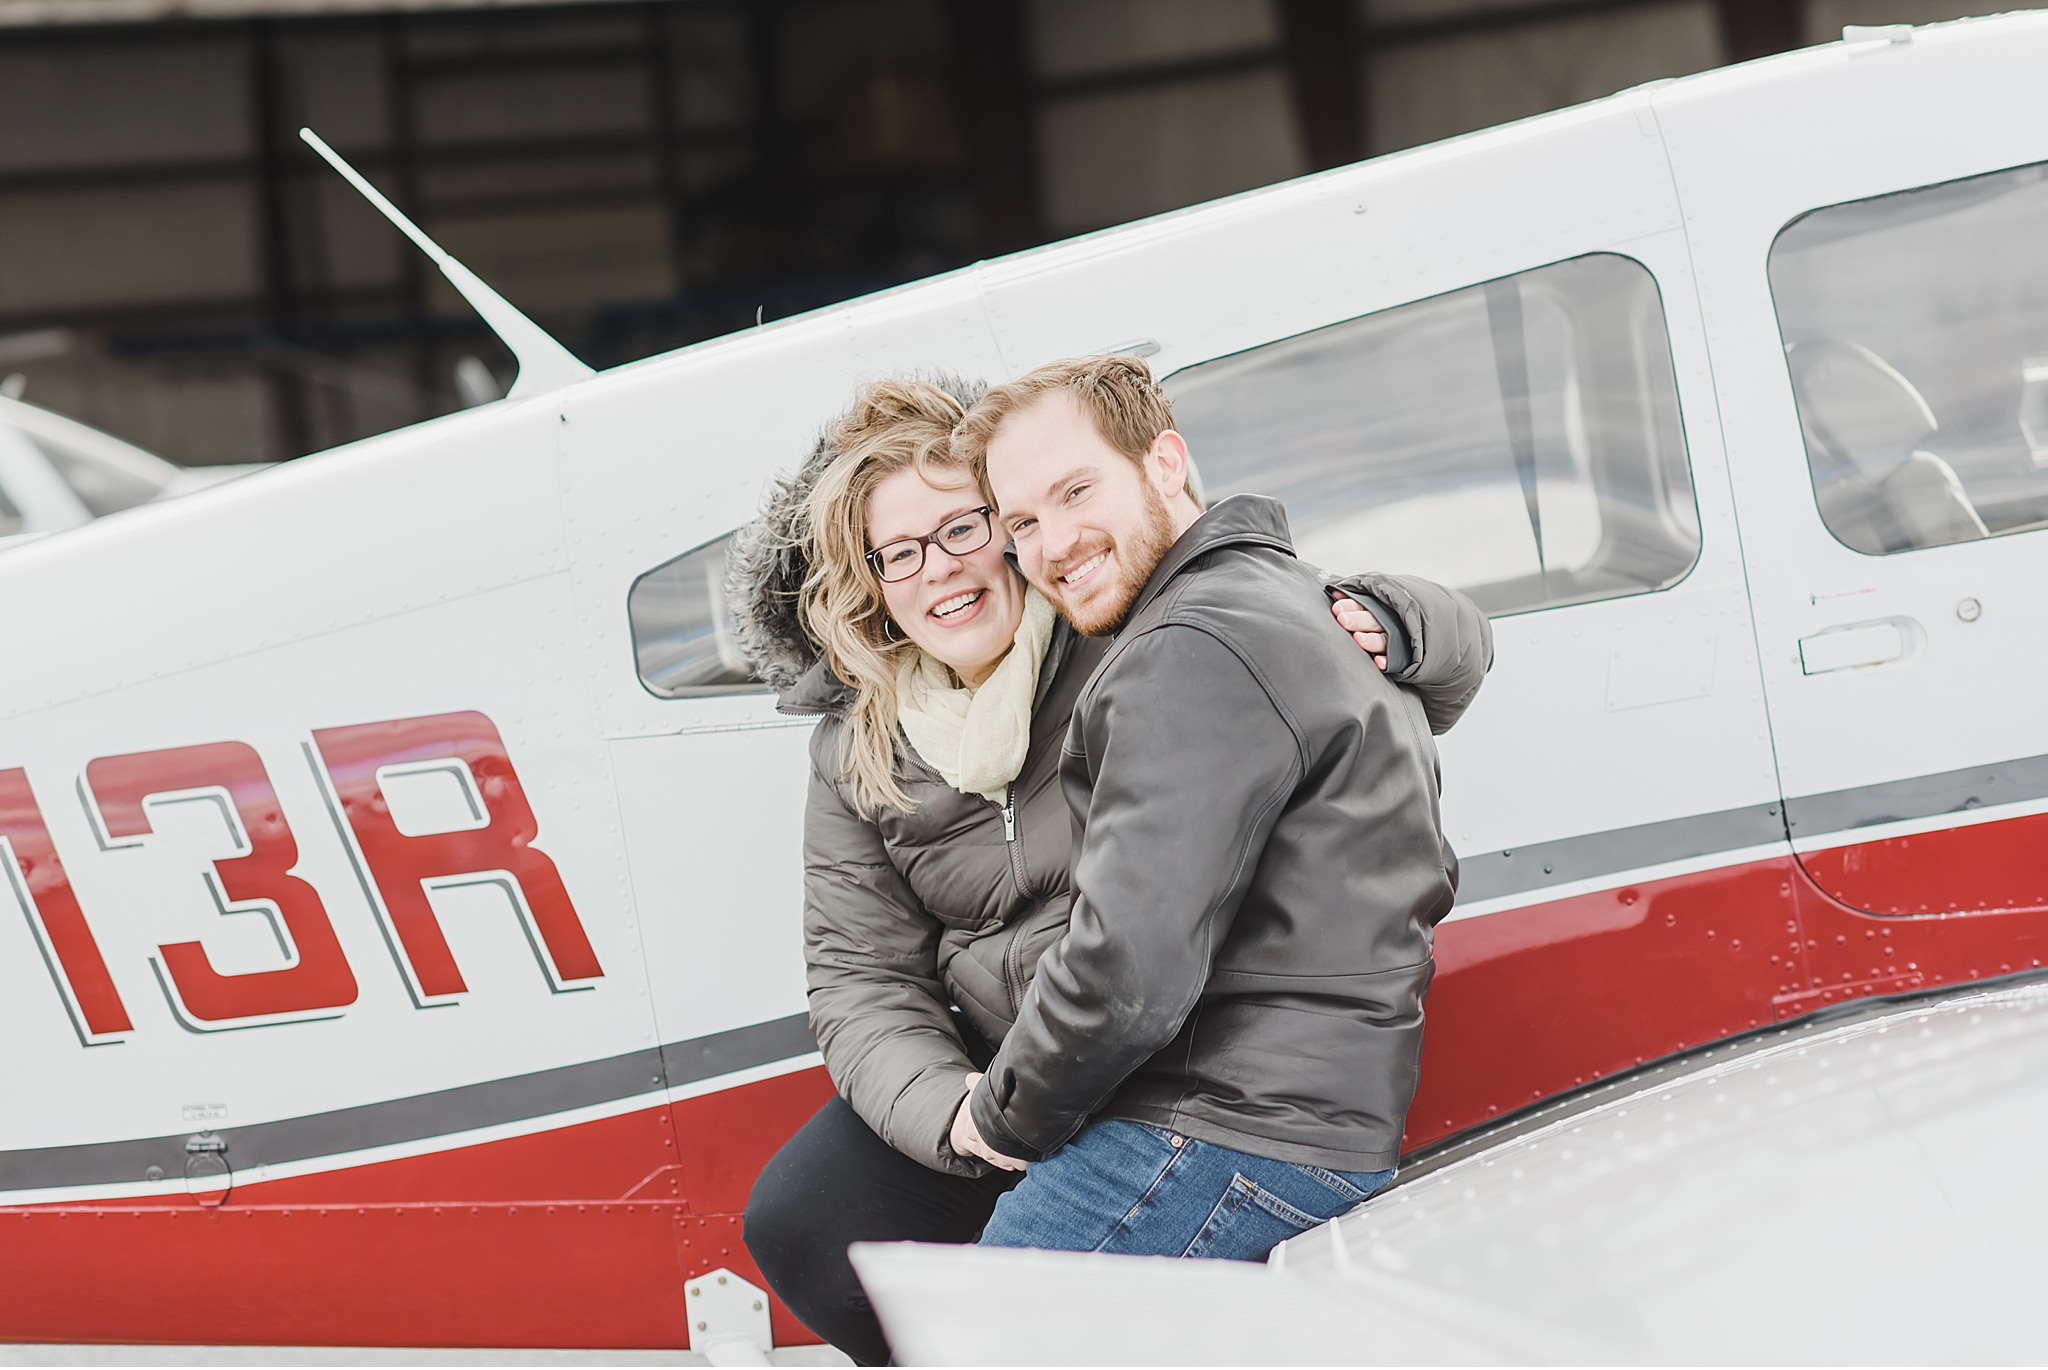 Lancaster airport Lititz Wedding photographer engagement session photo_2923.jpg